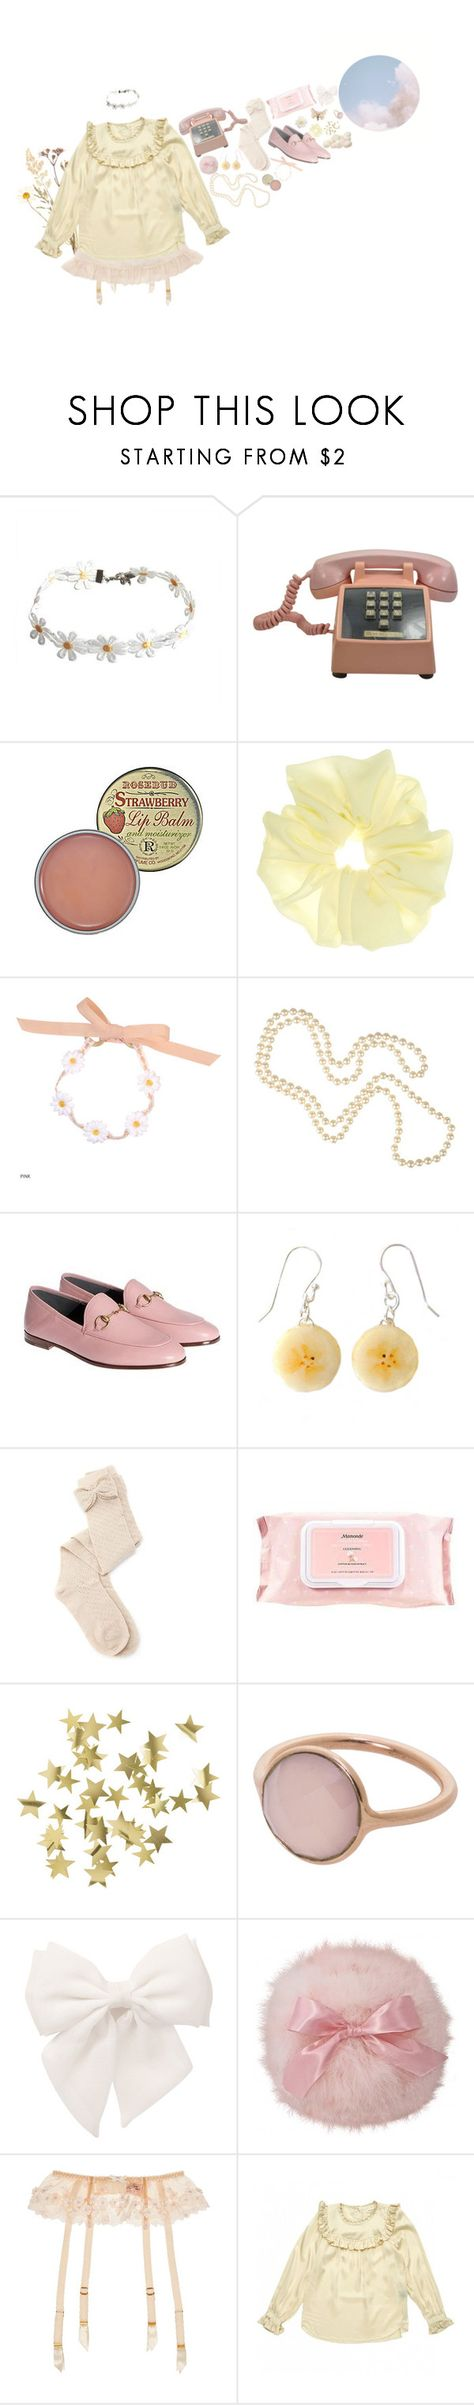 """""""Unbenannt #131"""" by togetic ❤ liked on Polyvore featuring Rosebud Perfume Co., Louche, Gucci, Charlotte Russe, Mamonde, H&M, Marjana von Berlepsch, Forever 21, Agent Provocateur and Étoile Isabel Marant"""